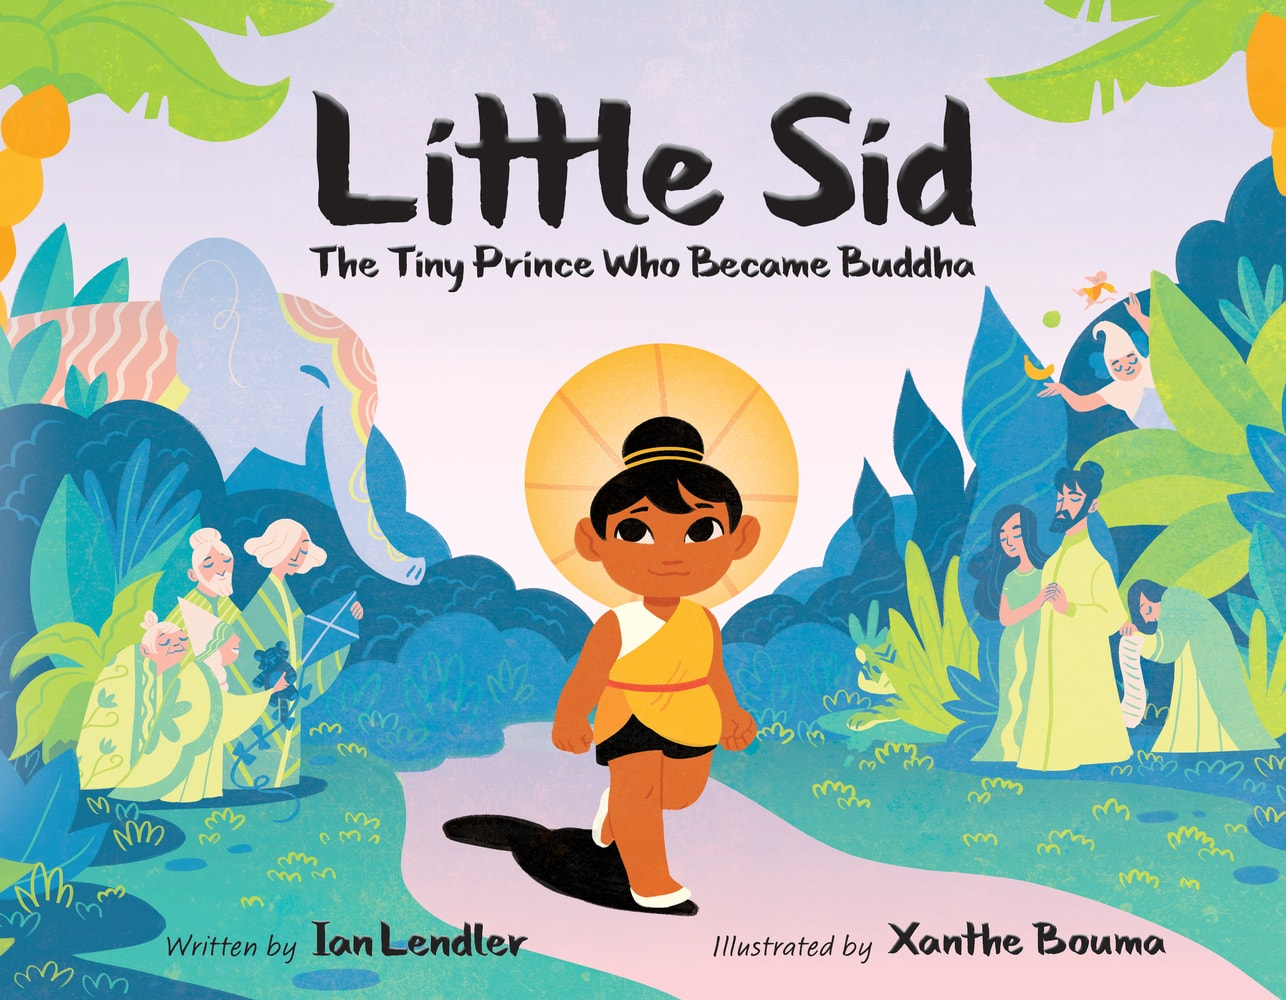 Little Sid: The Tiny Prince Who Became Buddha Review